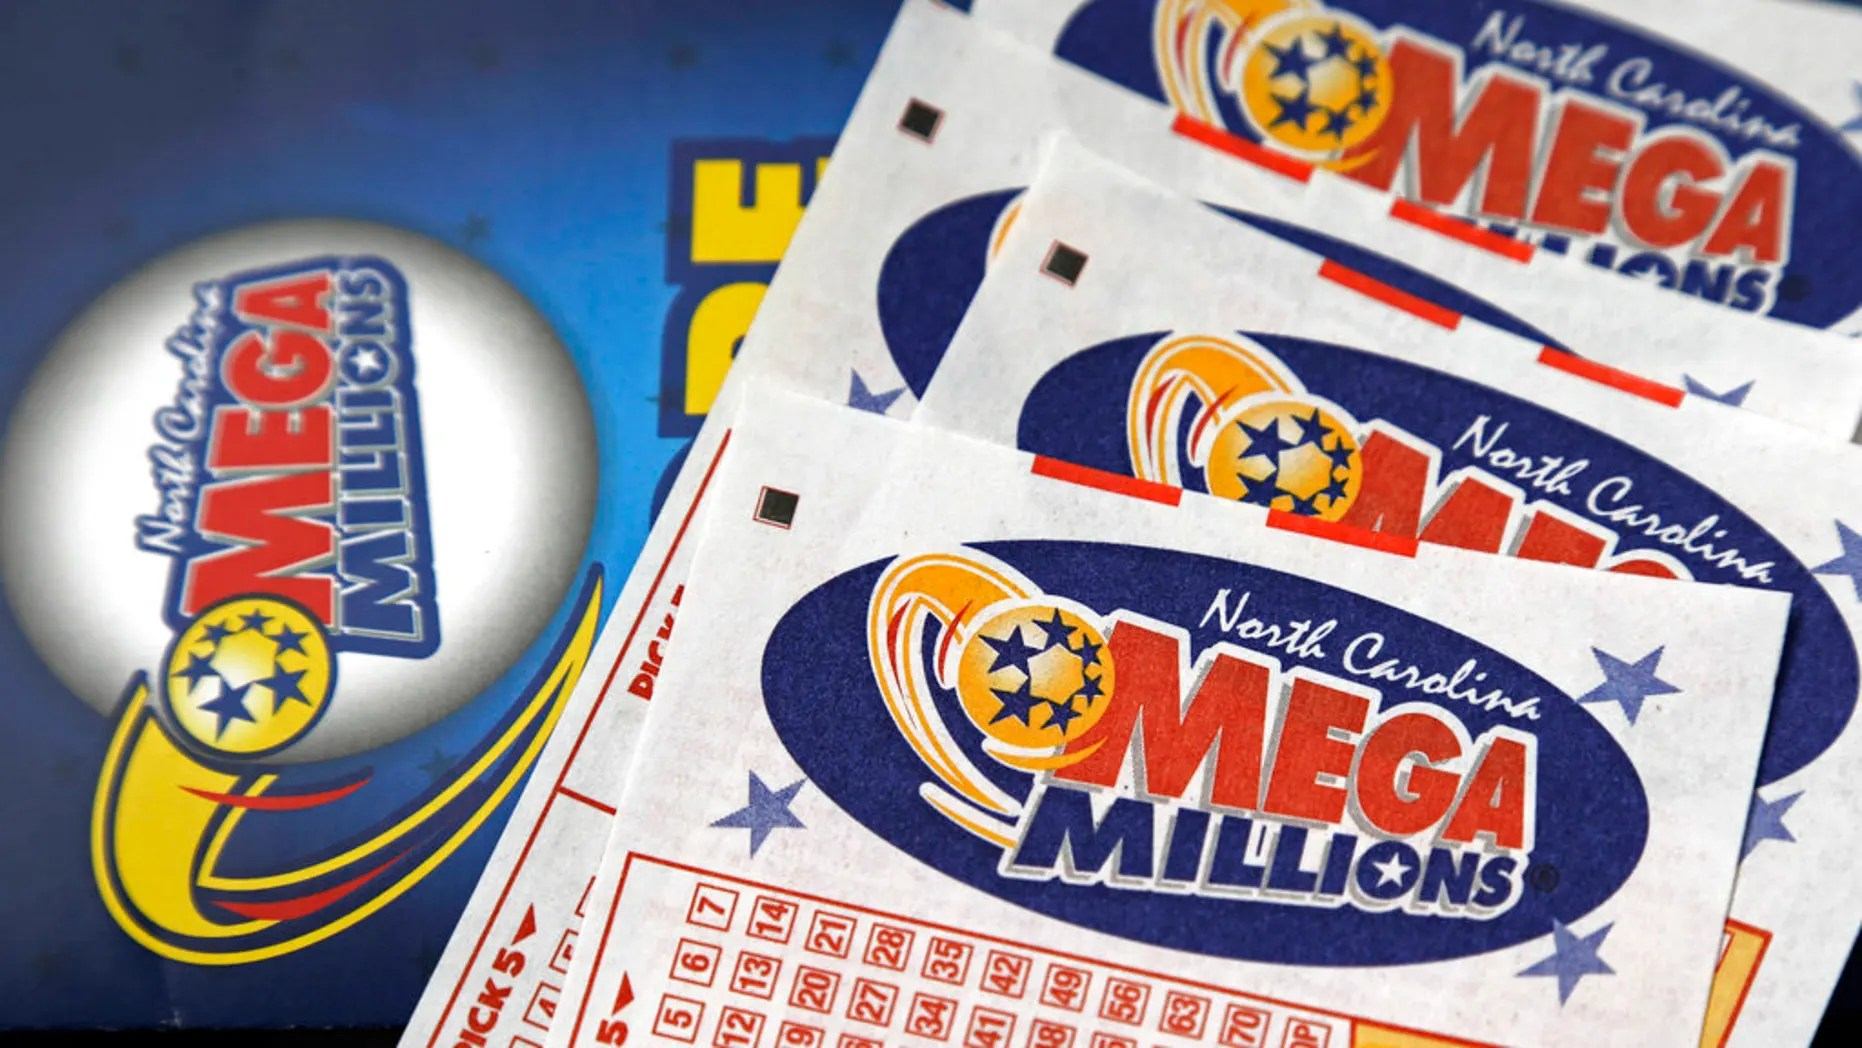 FILE: This photo shows Mega Millions lottery tickets on a counter at a Pilot travel center near Burlington, N.C.